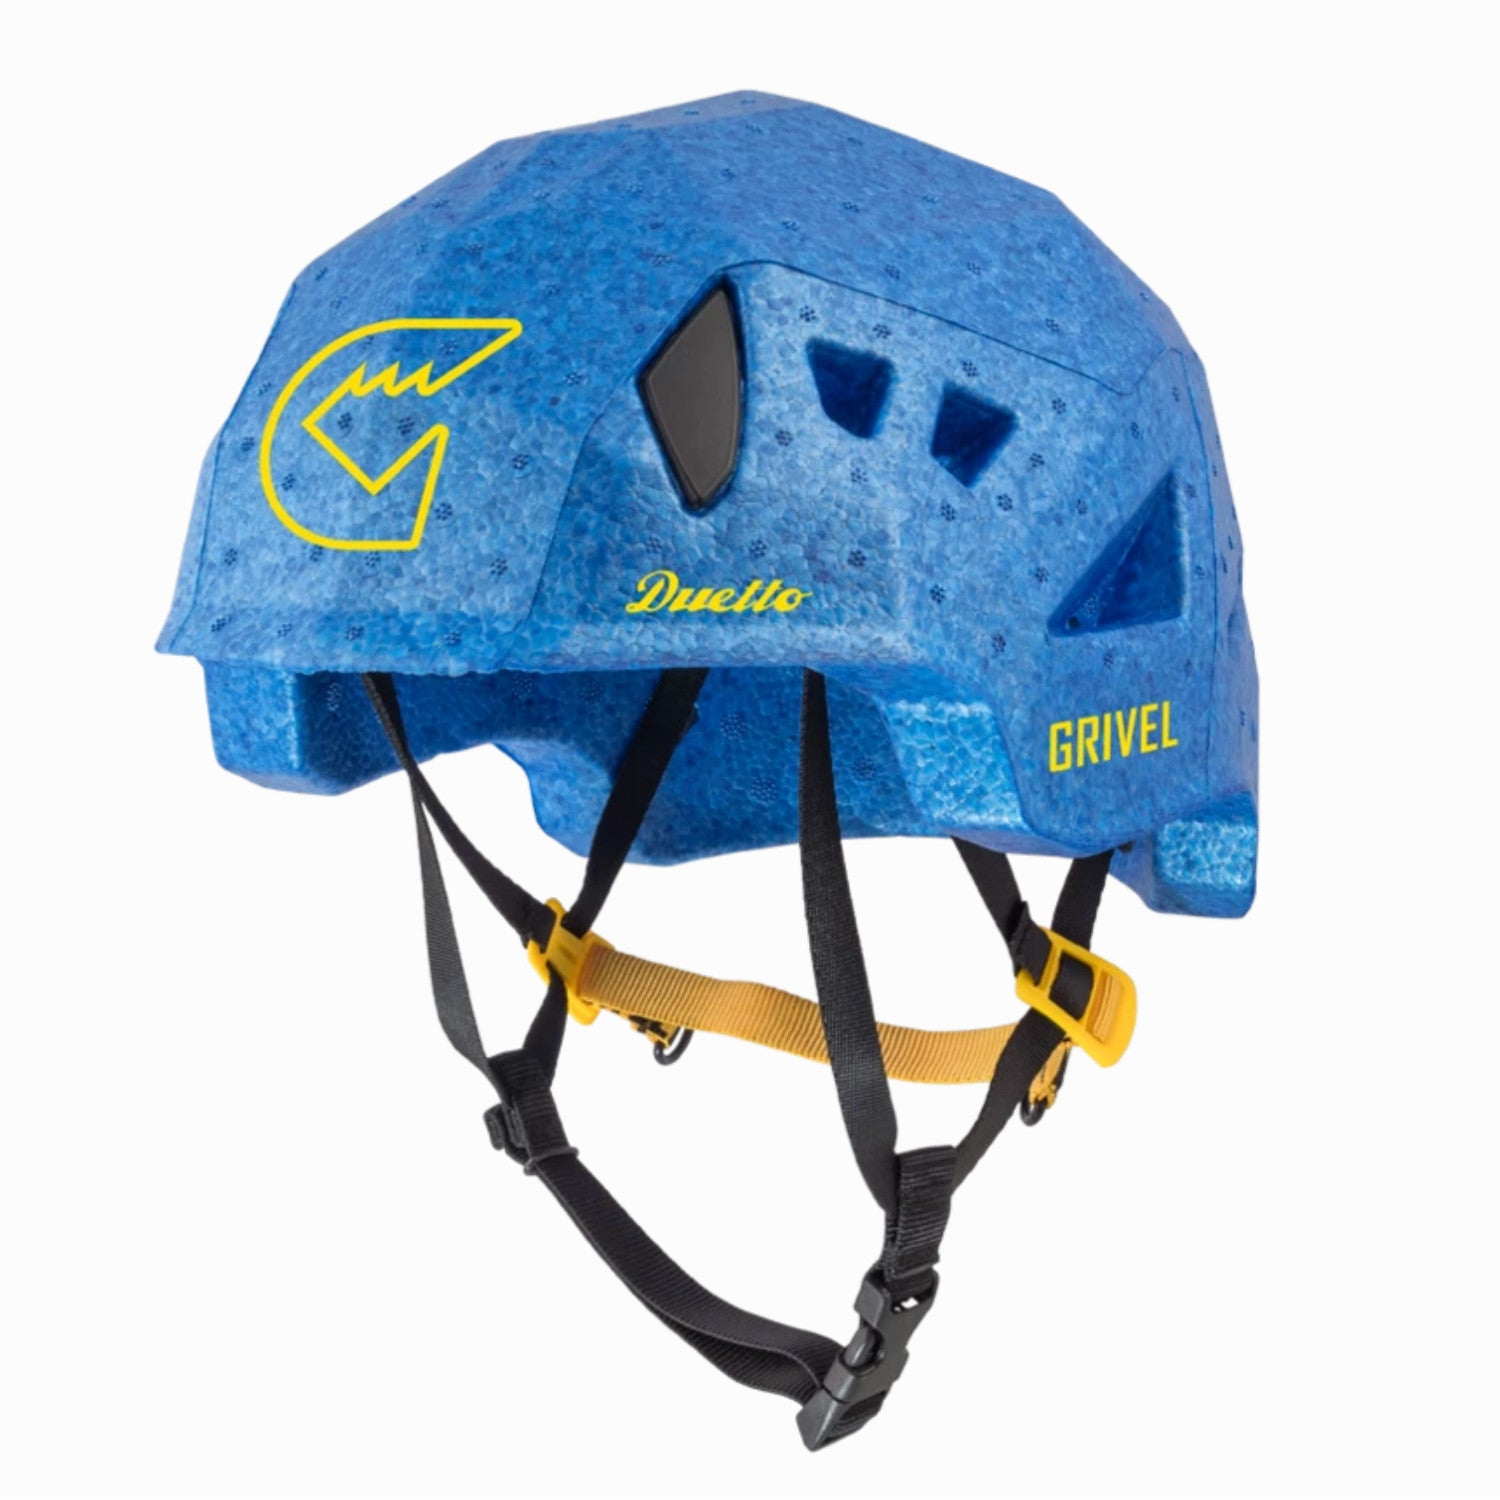 Grivel Duetto climbing and skiing helmet, front/side view in Blue colour